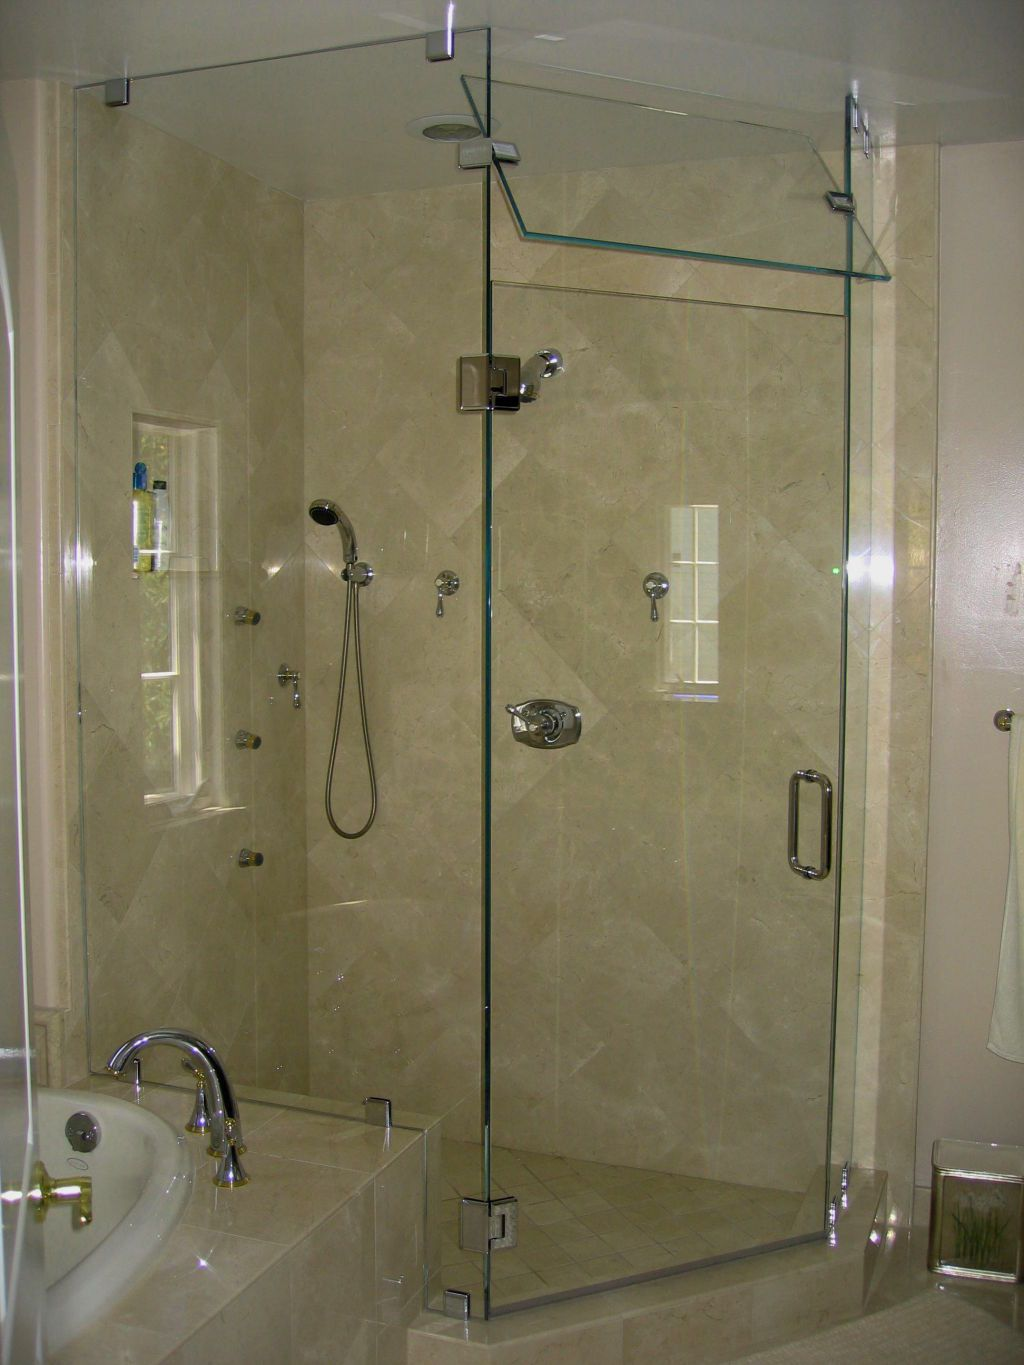 Glass steam shower doors ideas bathroom pinterest steam glass steam shower doors ideas eventelaan Images